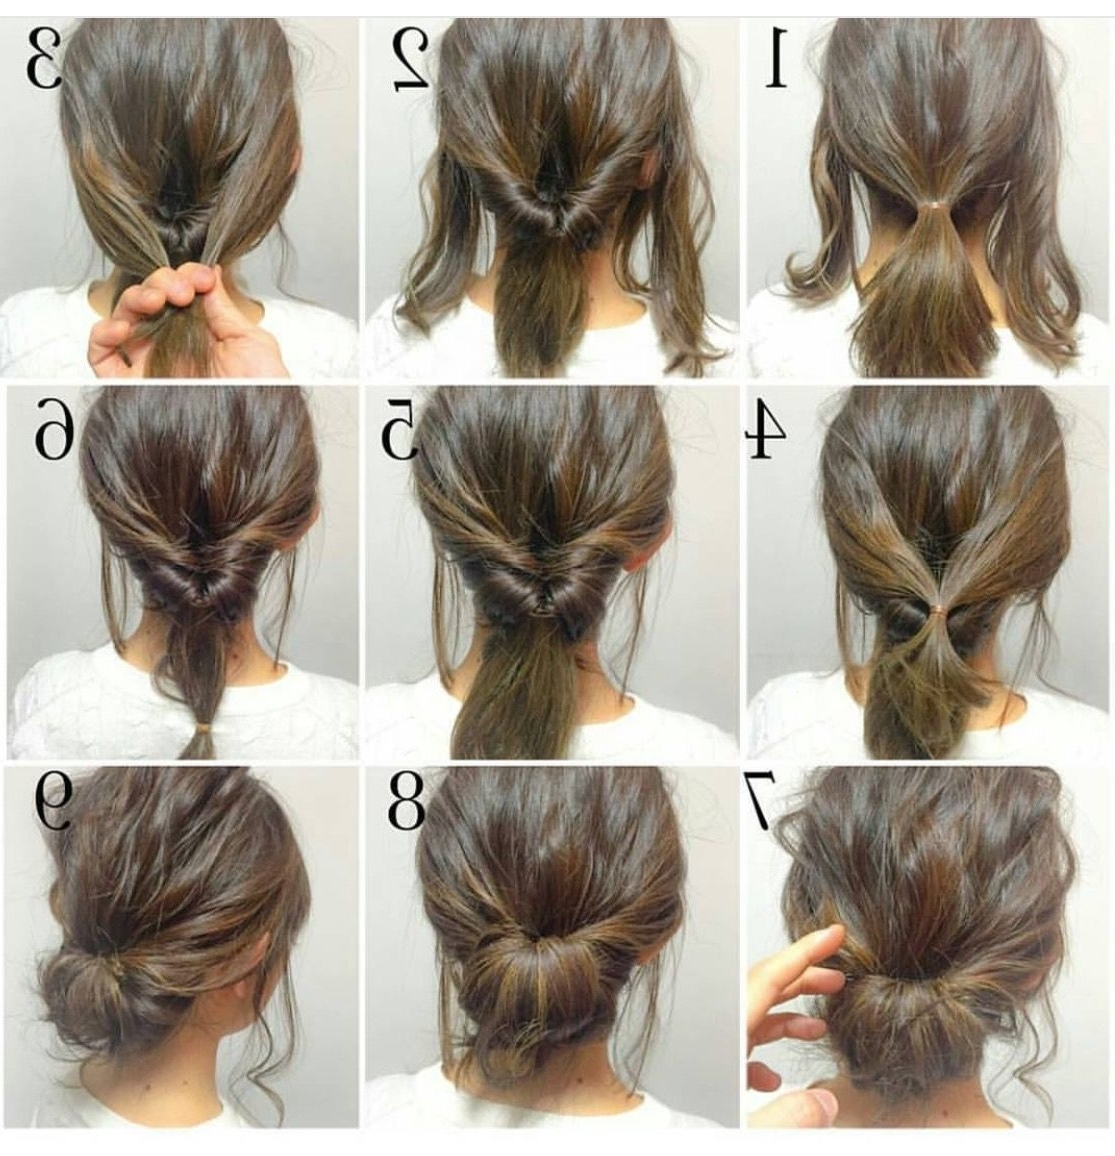 4 Messy Updos For Long Hair | Hairz | Pinterest | Updos, Hair Style Inside Updos For Long Hair (View 4 of 15)